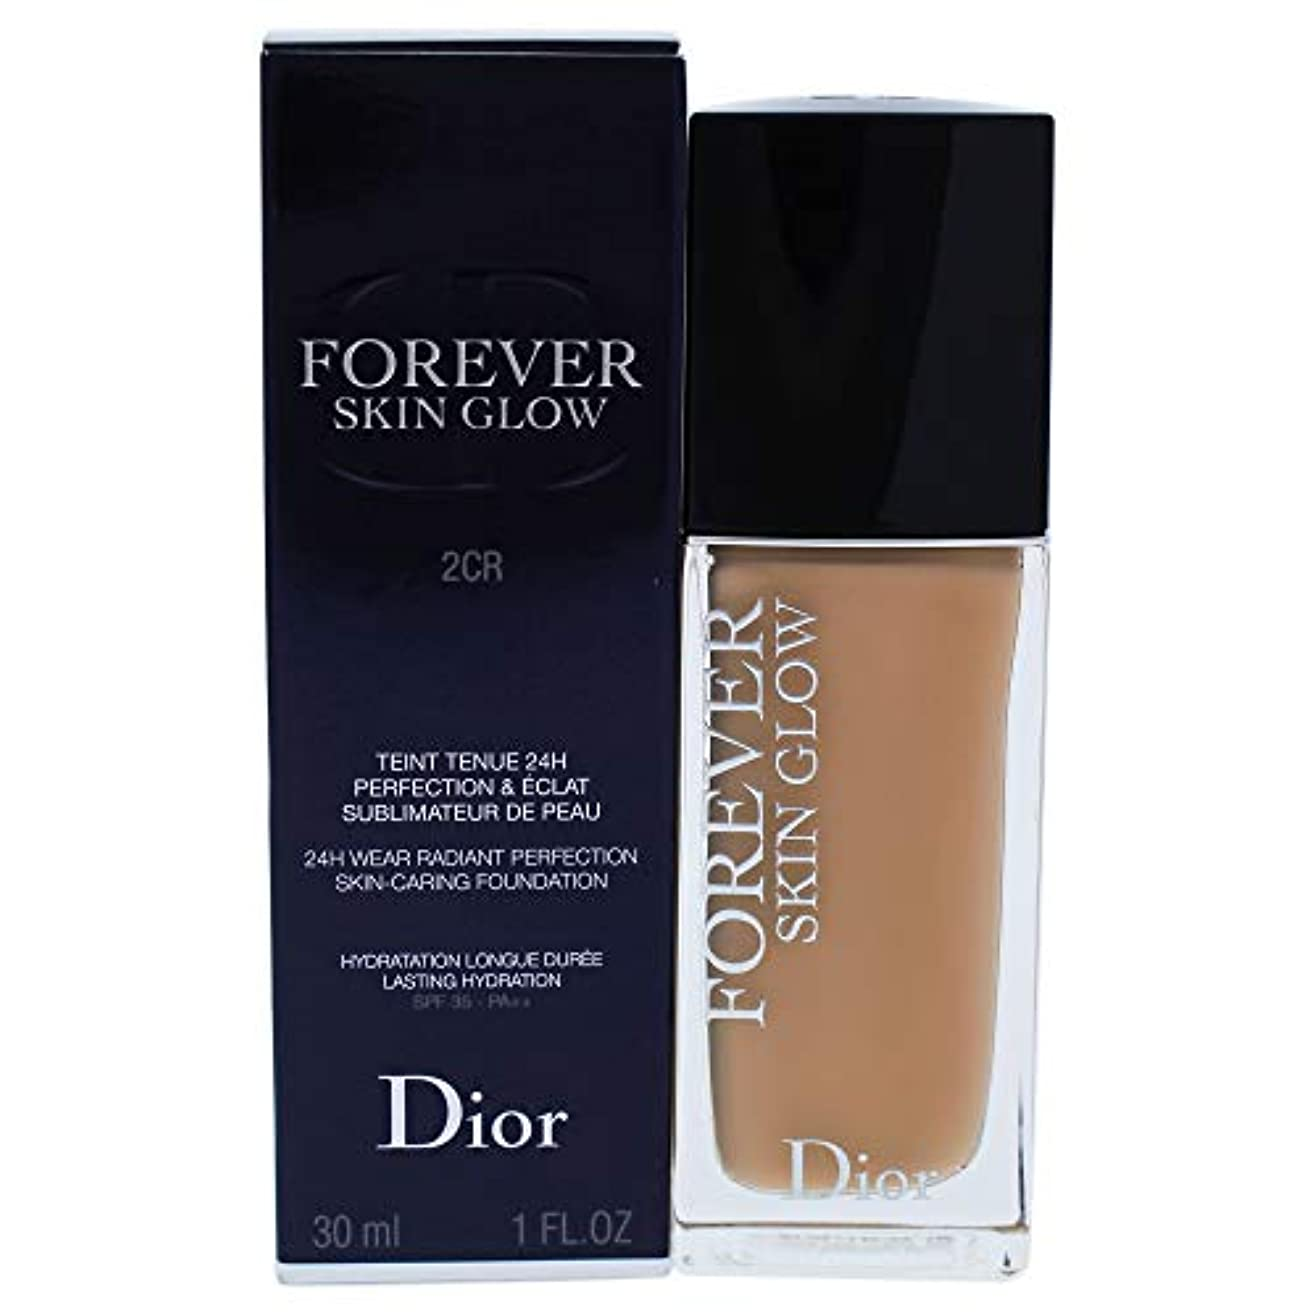 キャンプビーチワゴンクリスチャンディオール Dior Forever Skin Glow 24H Wear High Perfection Foundation SPF 35 - # 2CR (Cool Rosy) 30ml/1oz並行輸入品